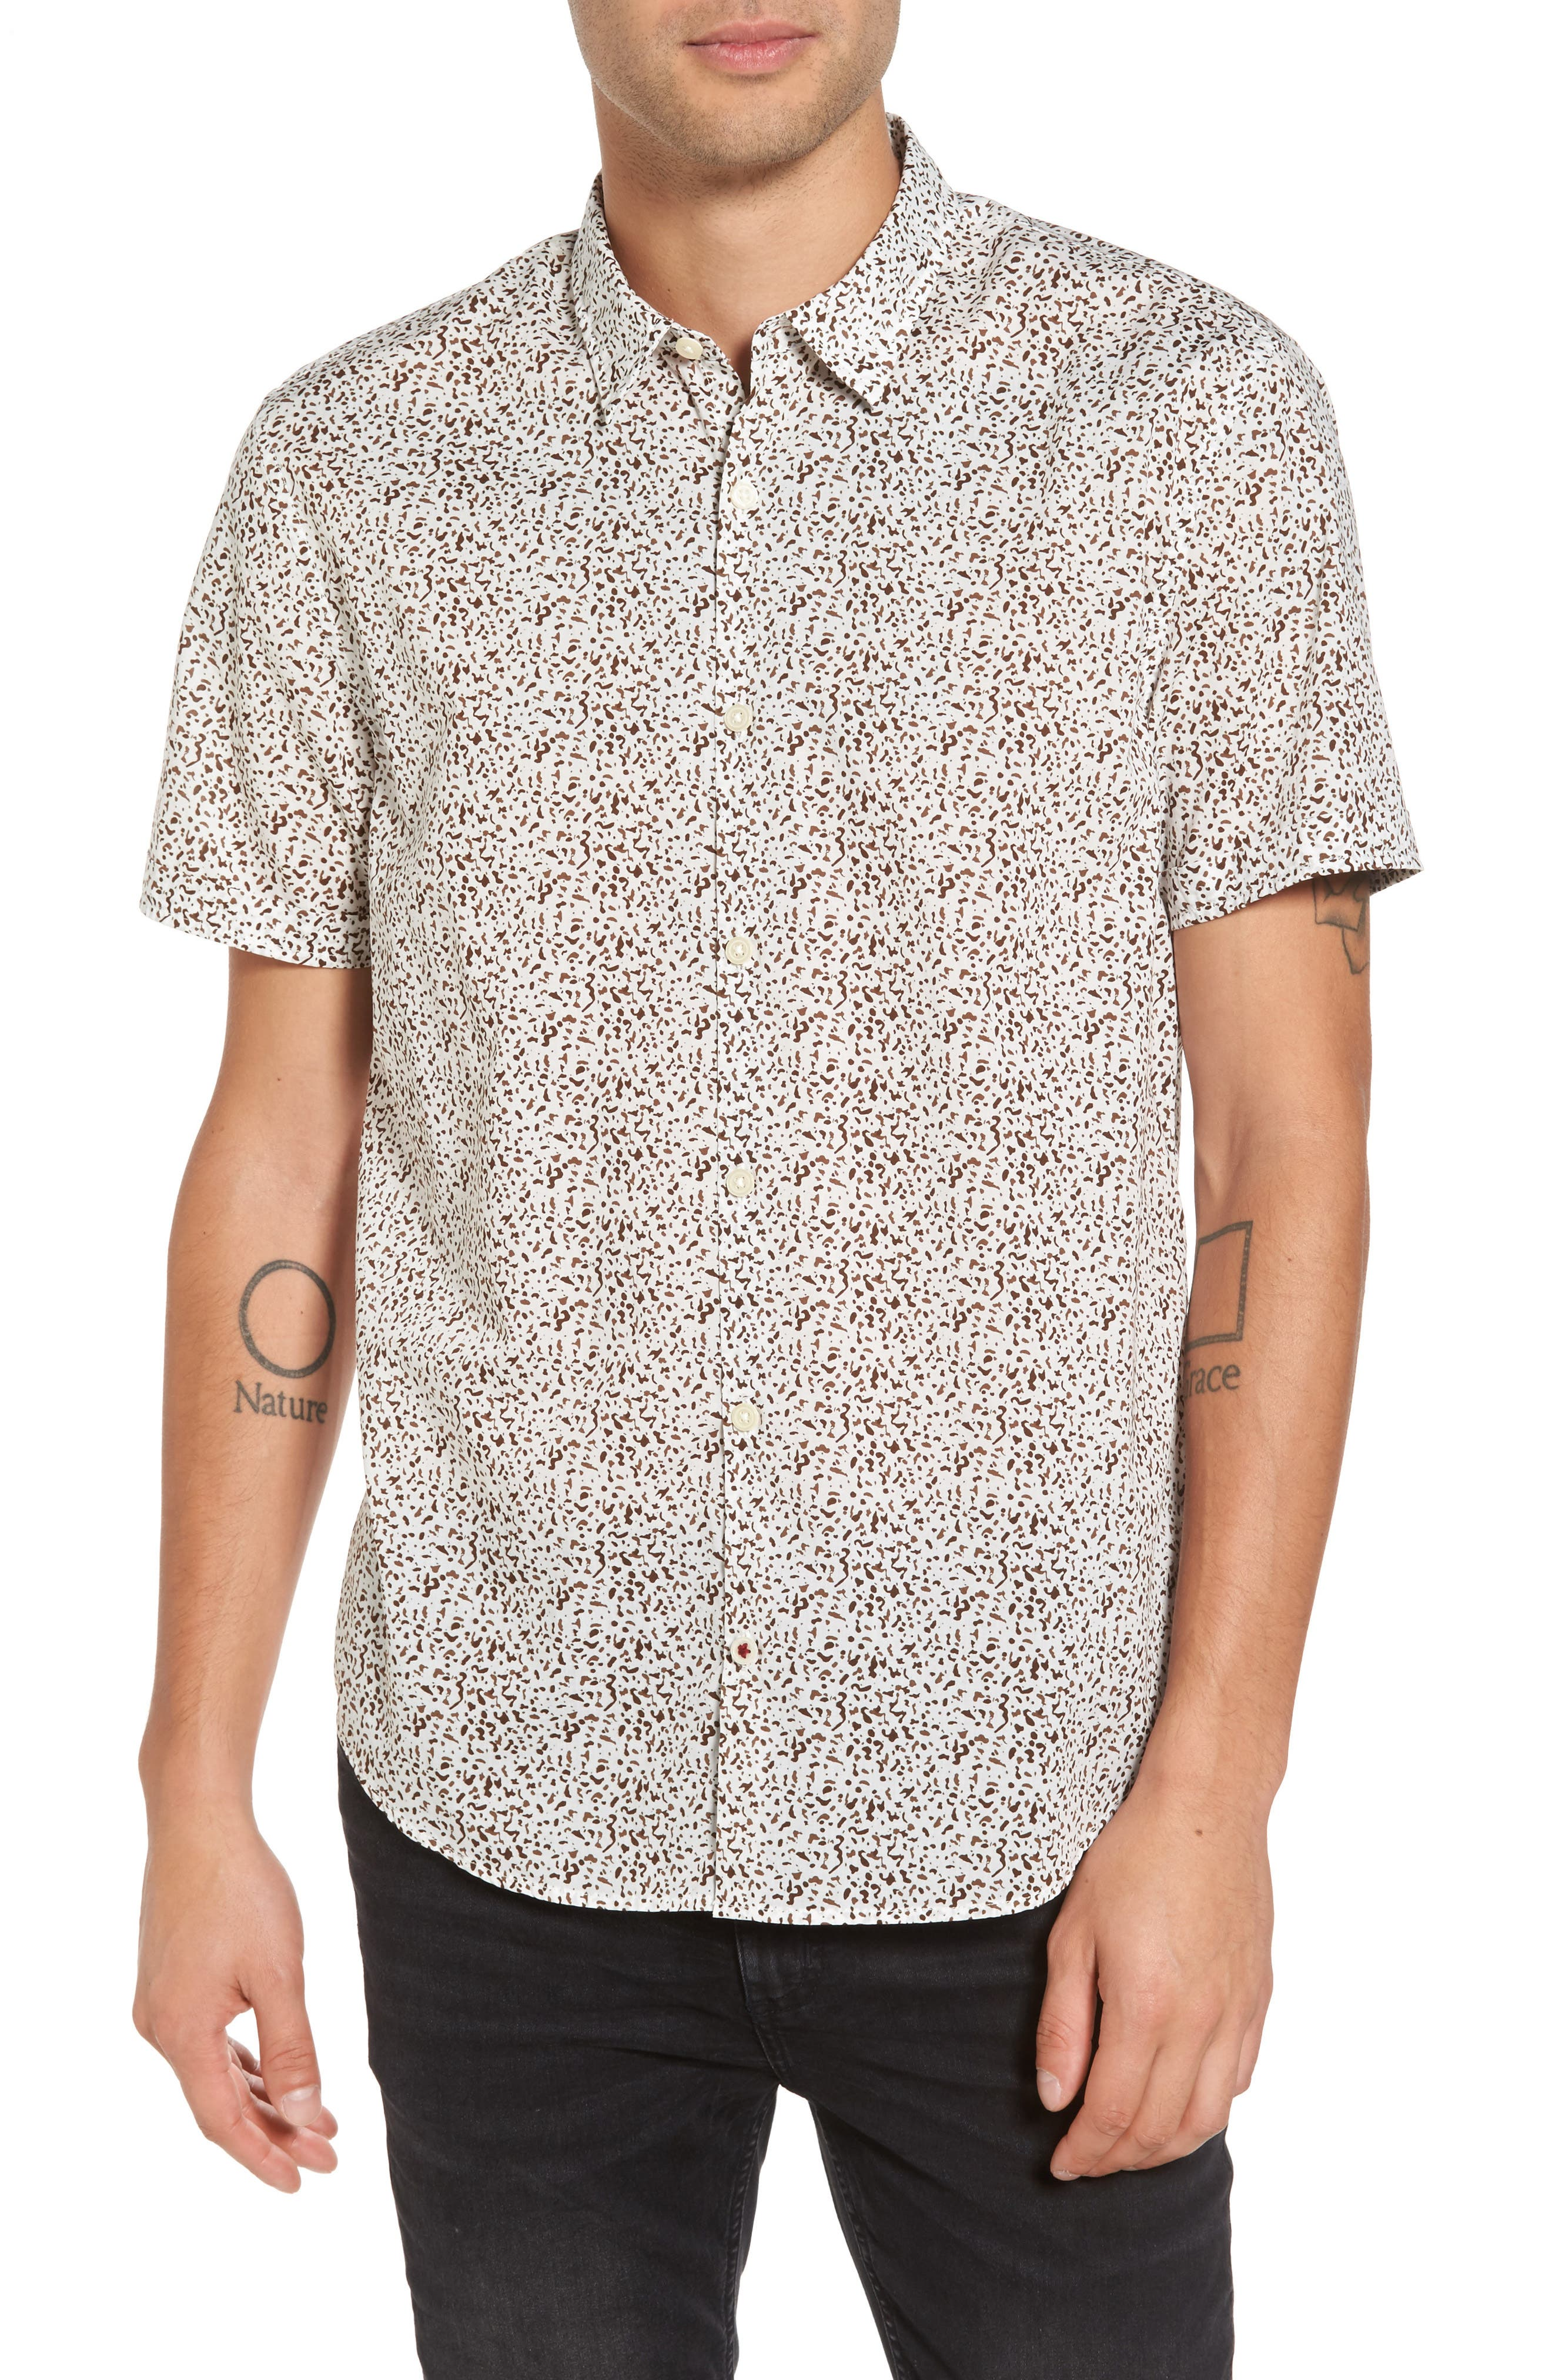 Star USA Slim Fit Animal Print Short Sleeve Sport Shirt